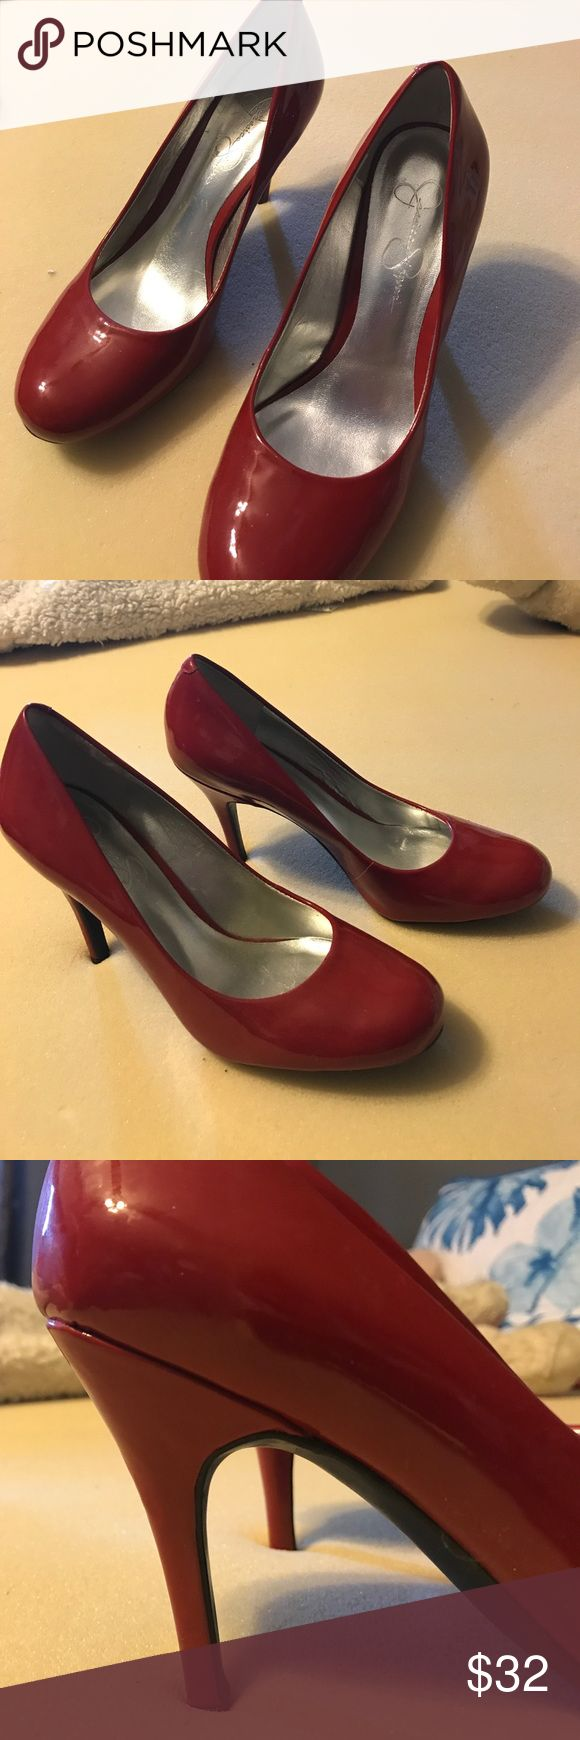 Jessica Simpson Red Classy Heal Like new. Only worn once! Jessica Simpson Shoes Heels